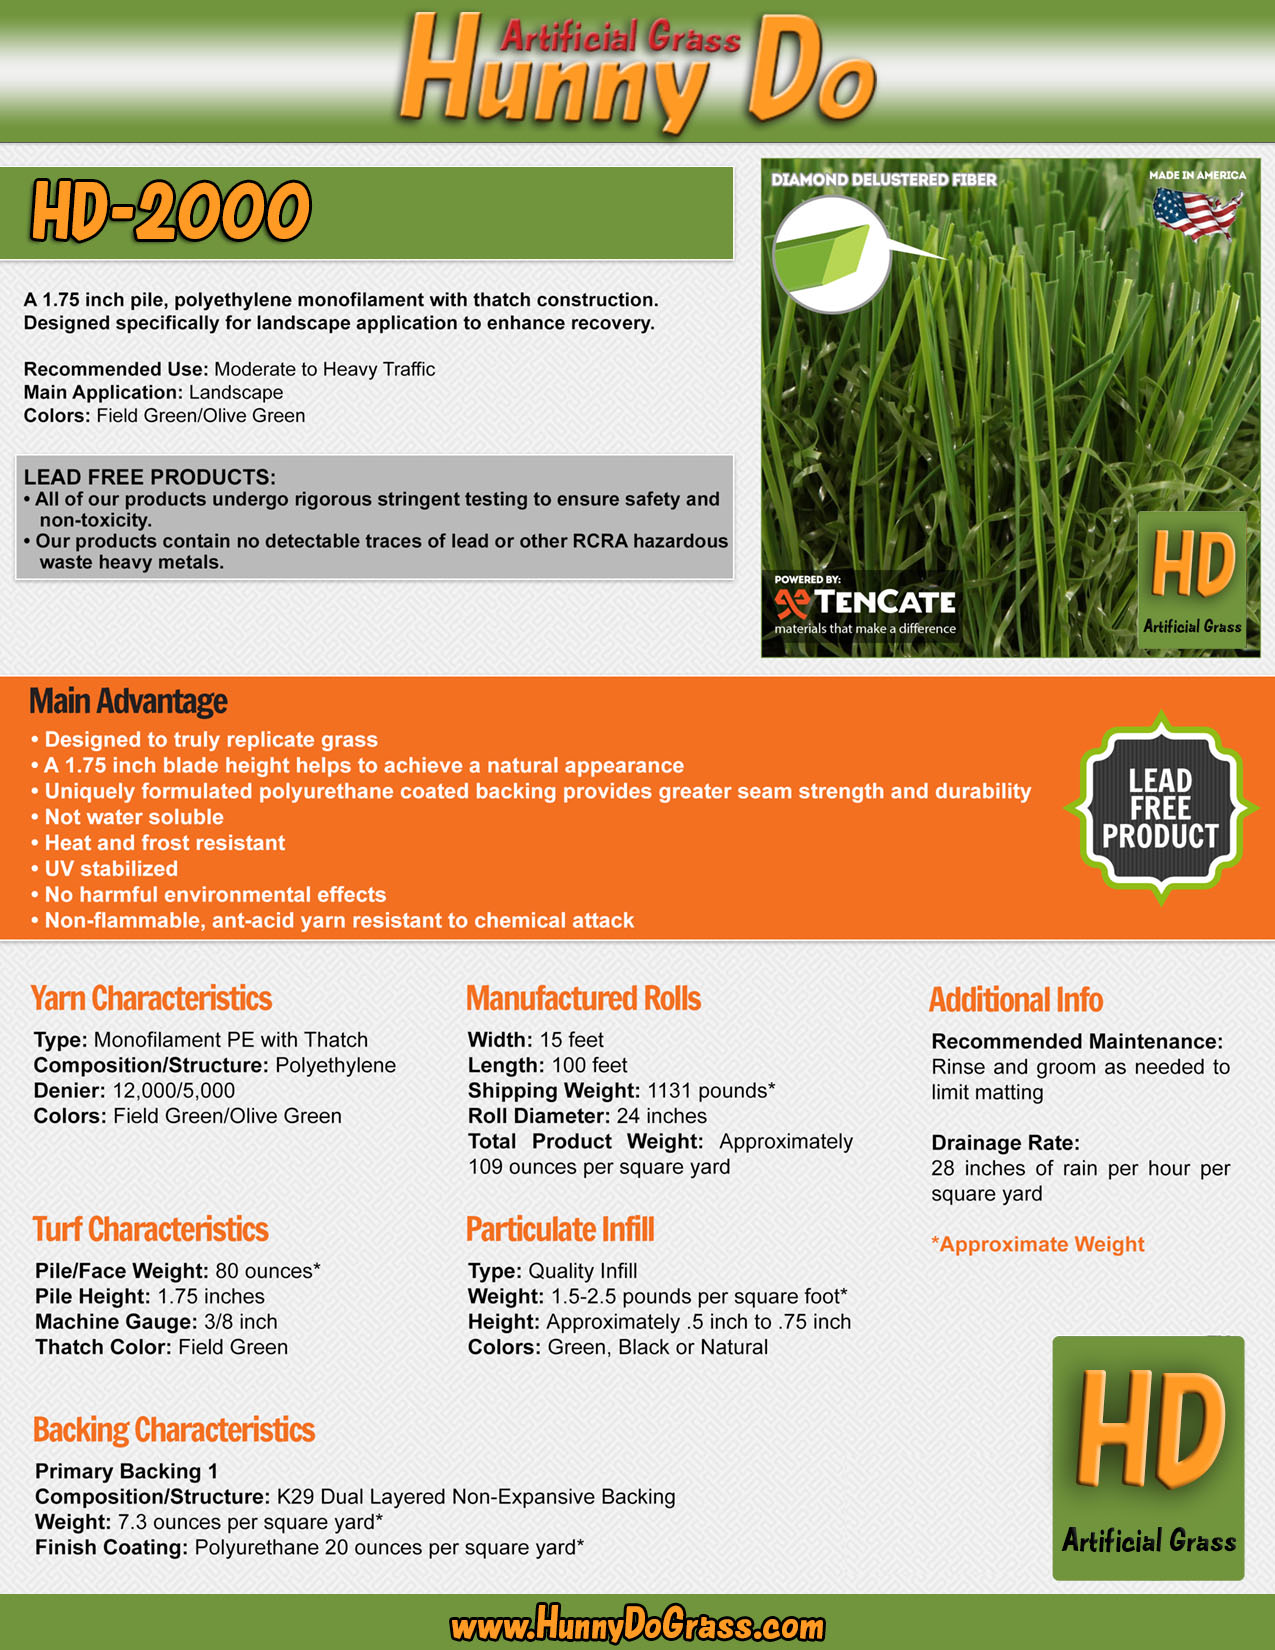 Hunny Do 2000 Specifications